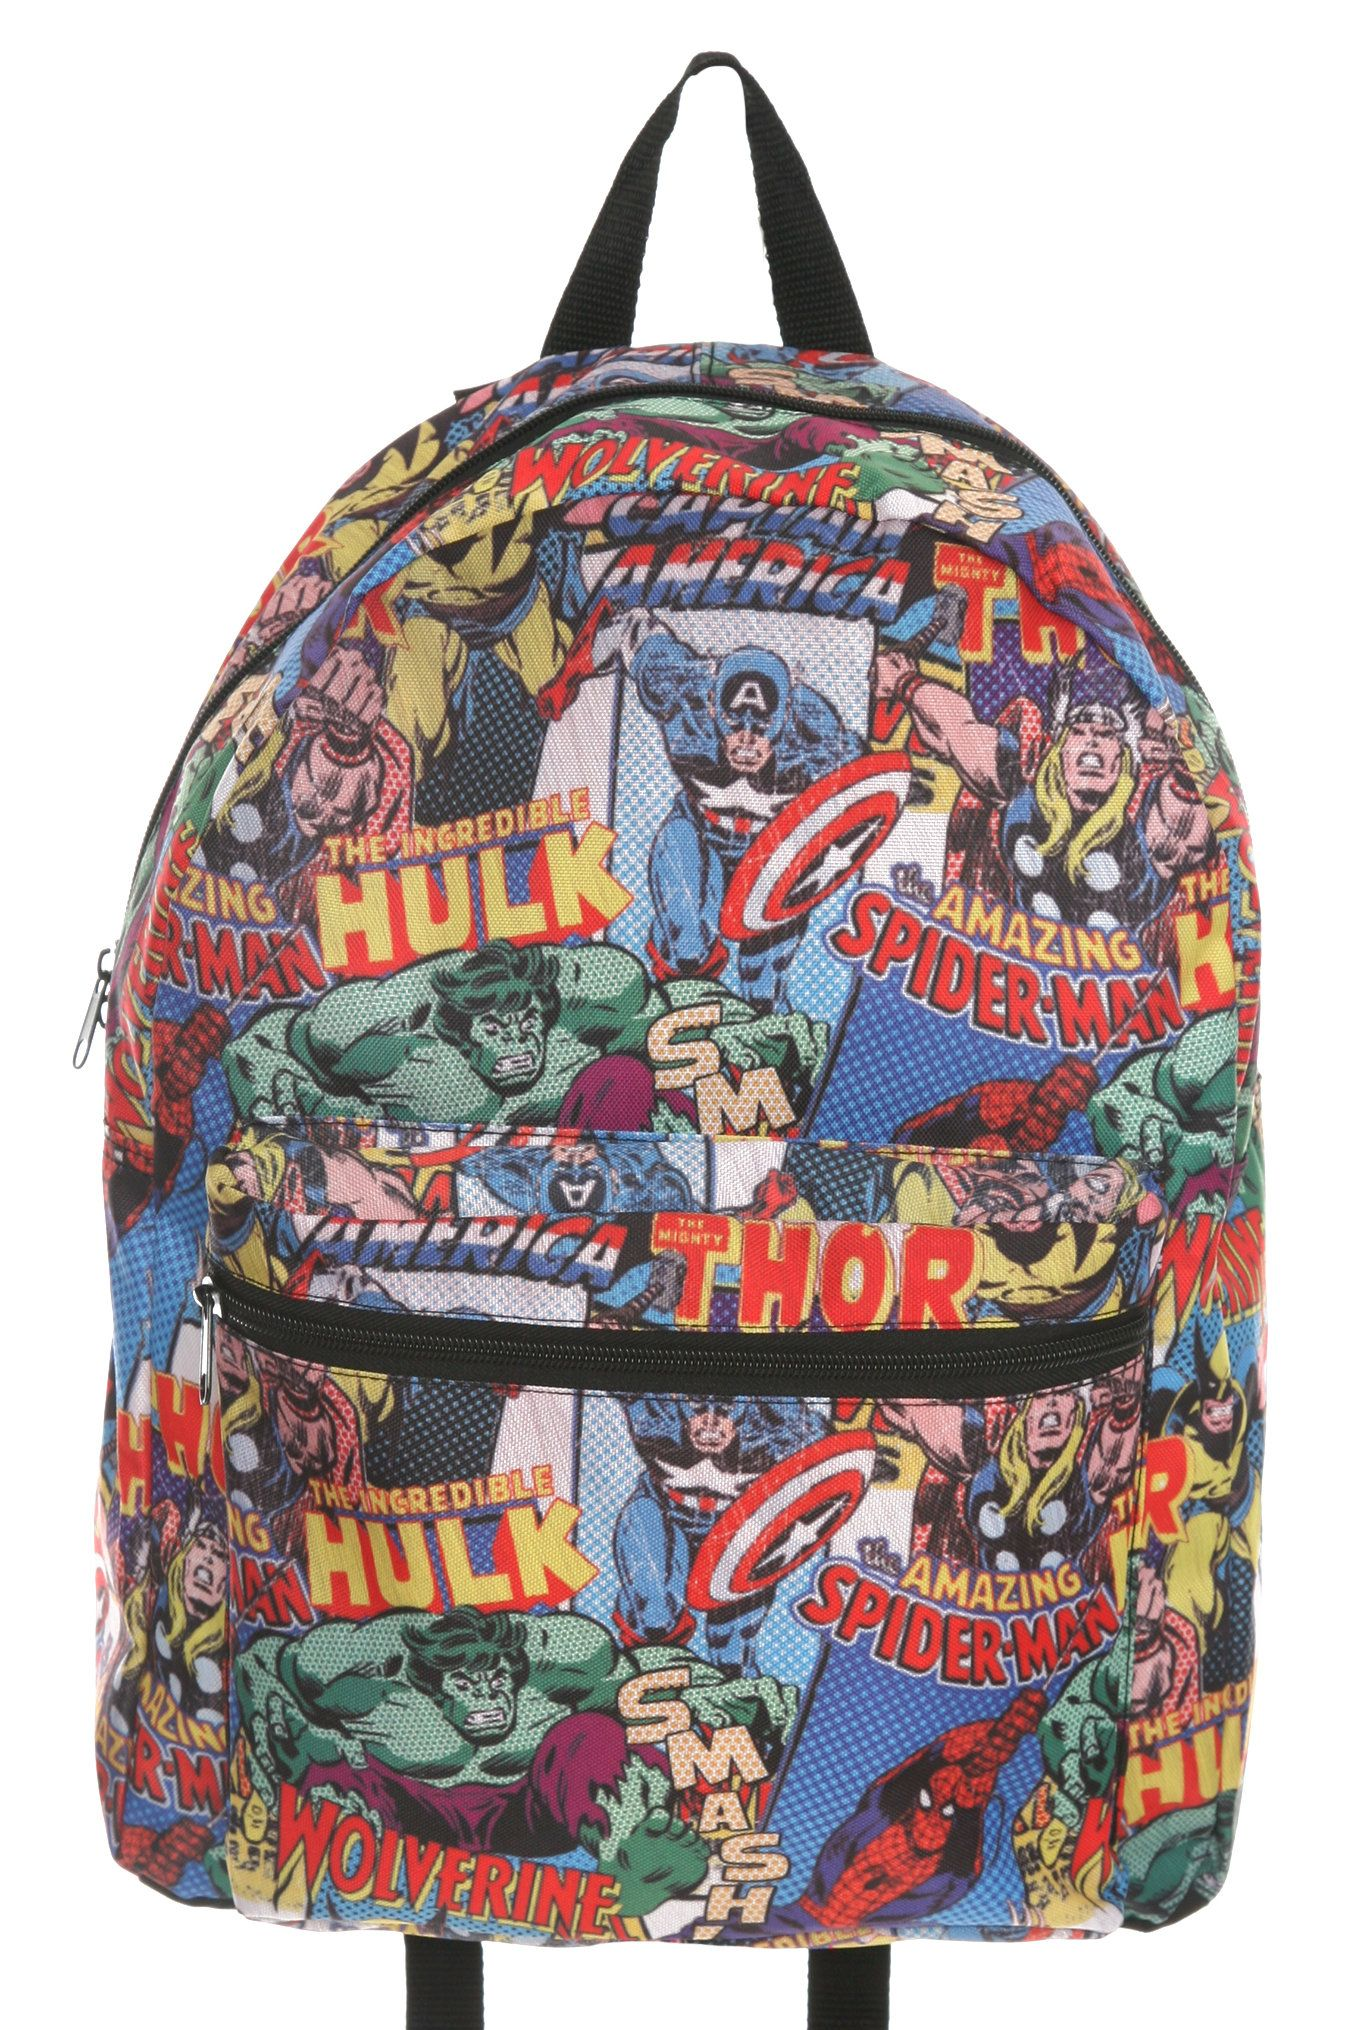 marvel bag | Marvel Comics Messenger Shoulder Book BAG Backpack DJ ...